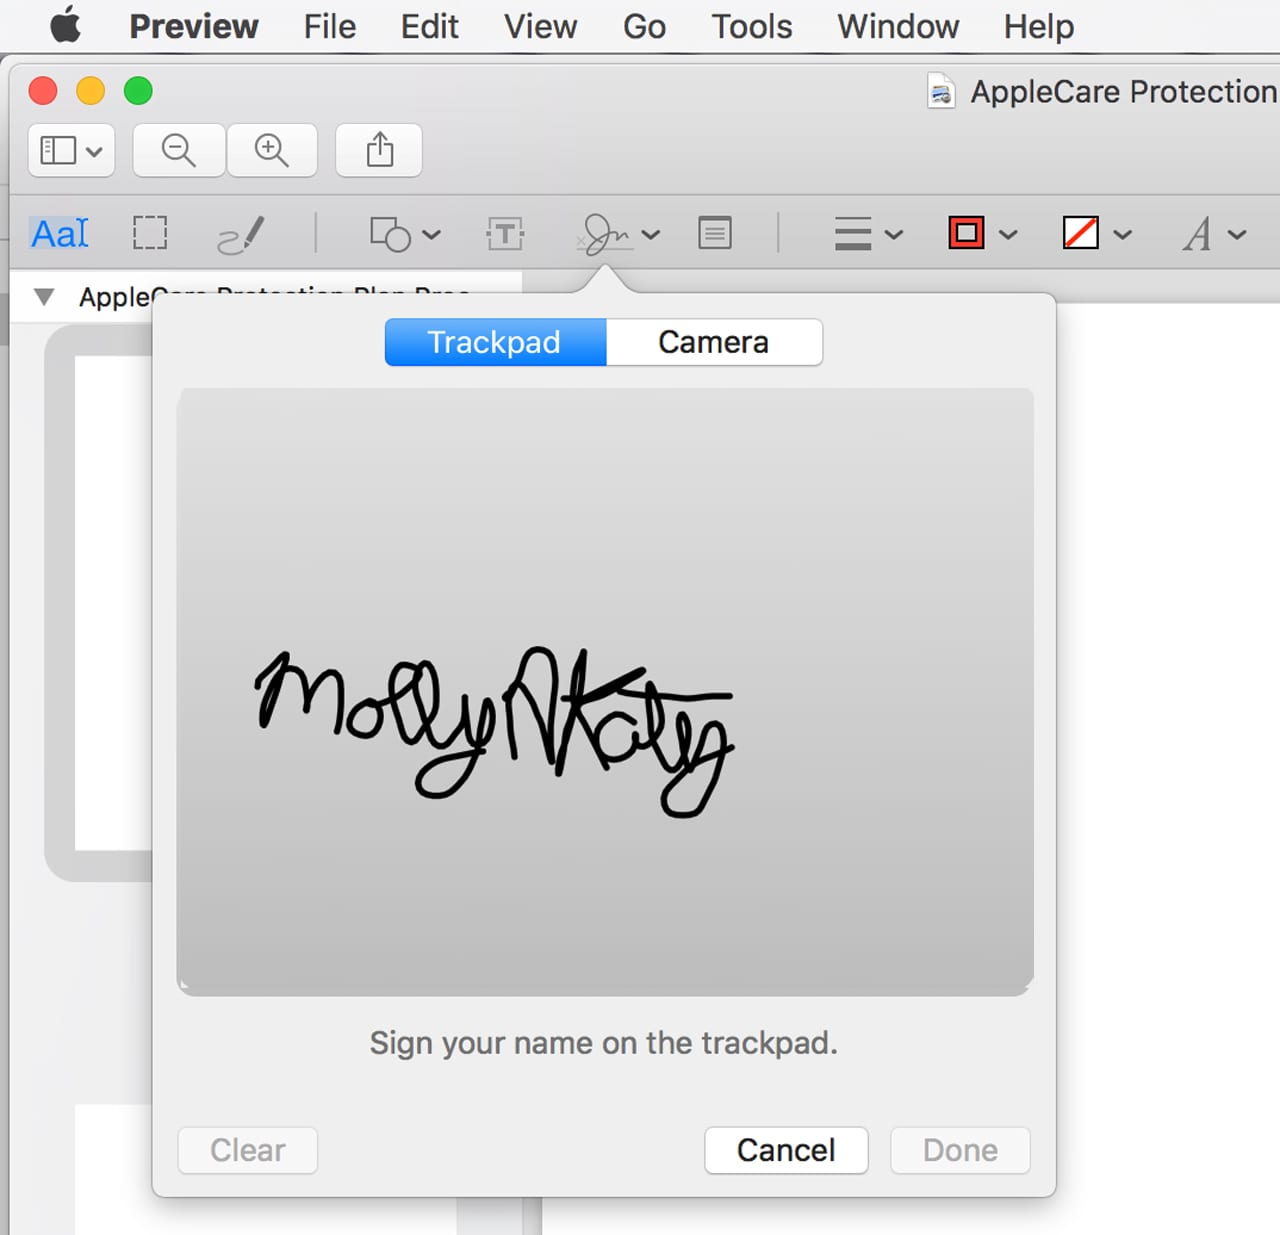 (You can use either your Mac's trackpad or a camera to create a signature to use for signing documents electronically.)